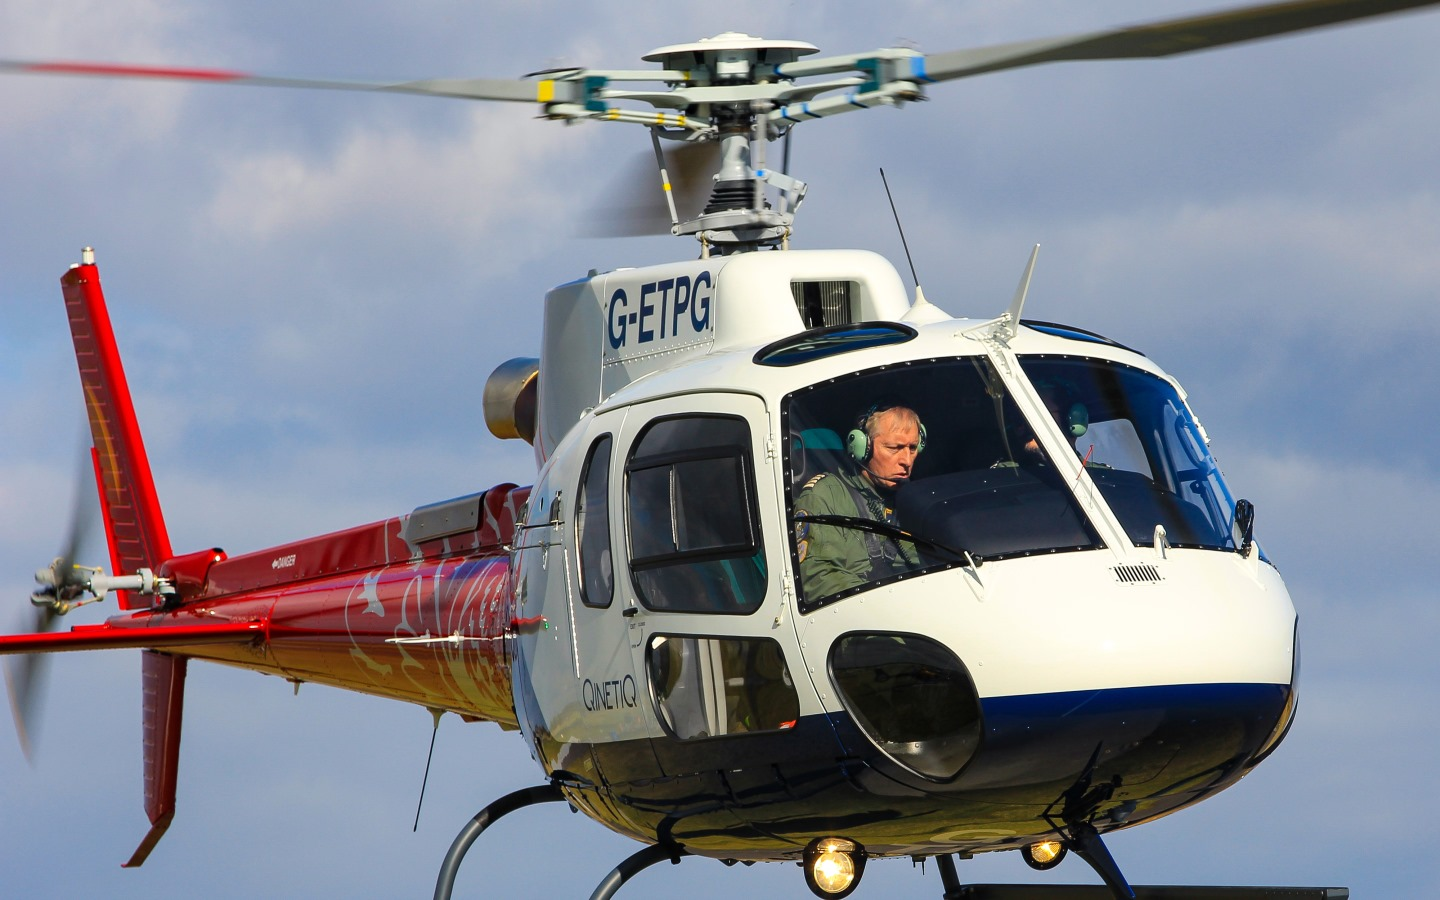 ETPS takes delivery of new Airbus H125 helicopter